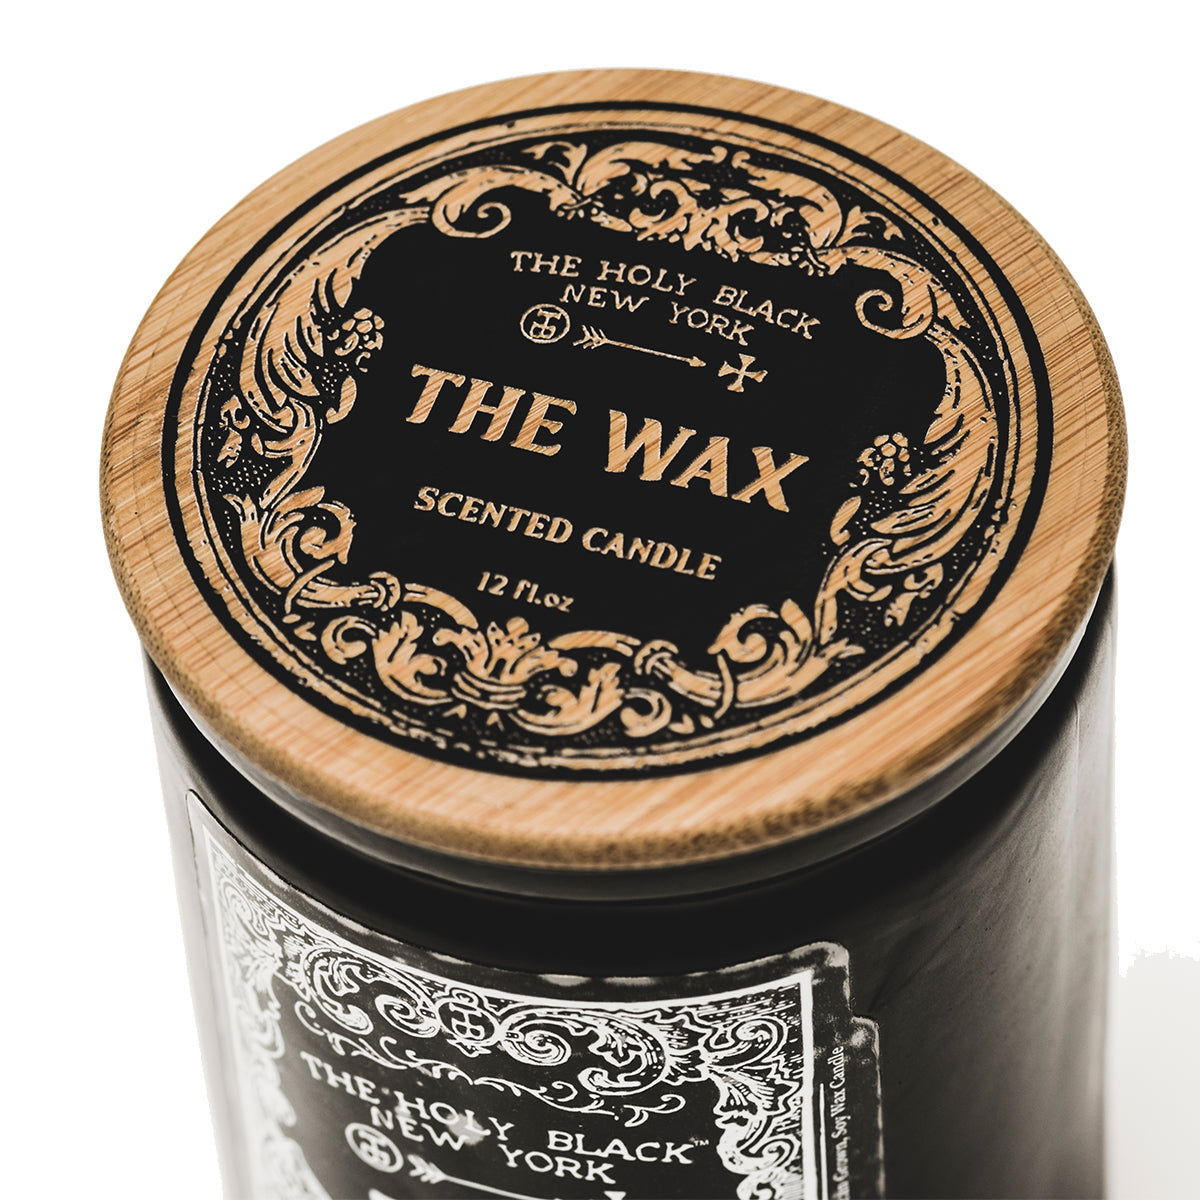 THE WAX Scented Candle